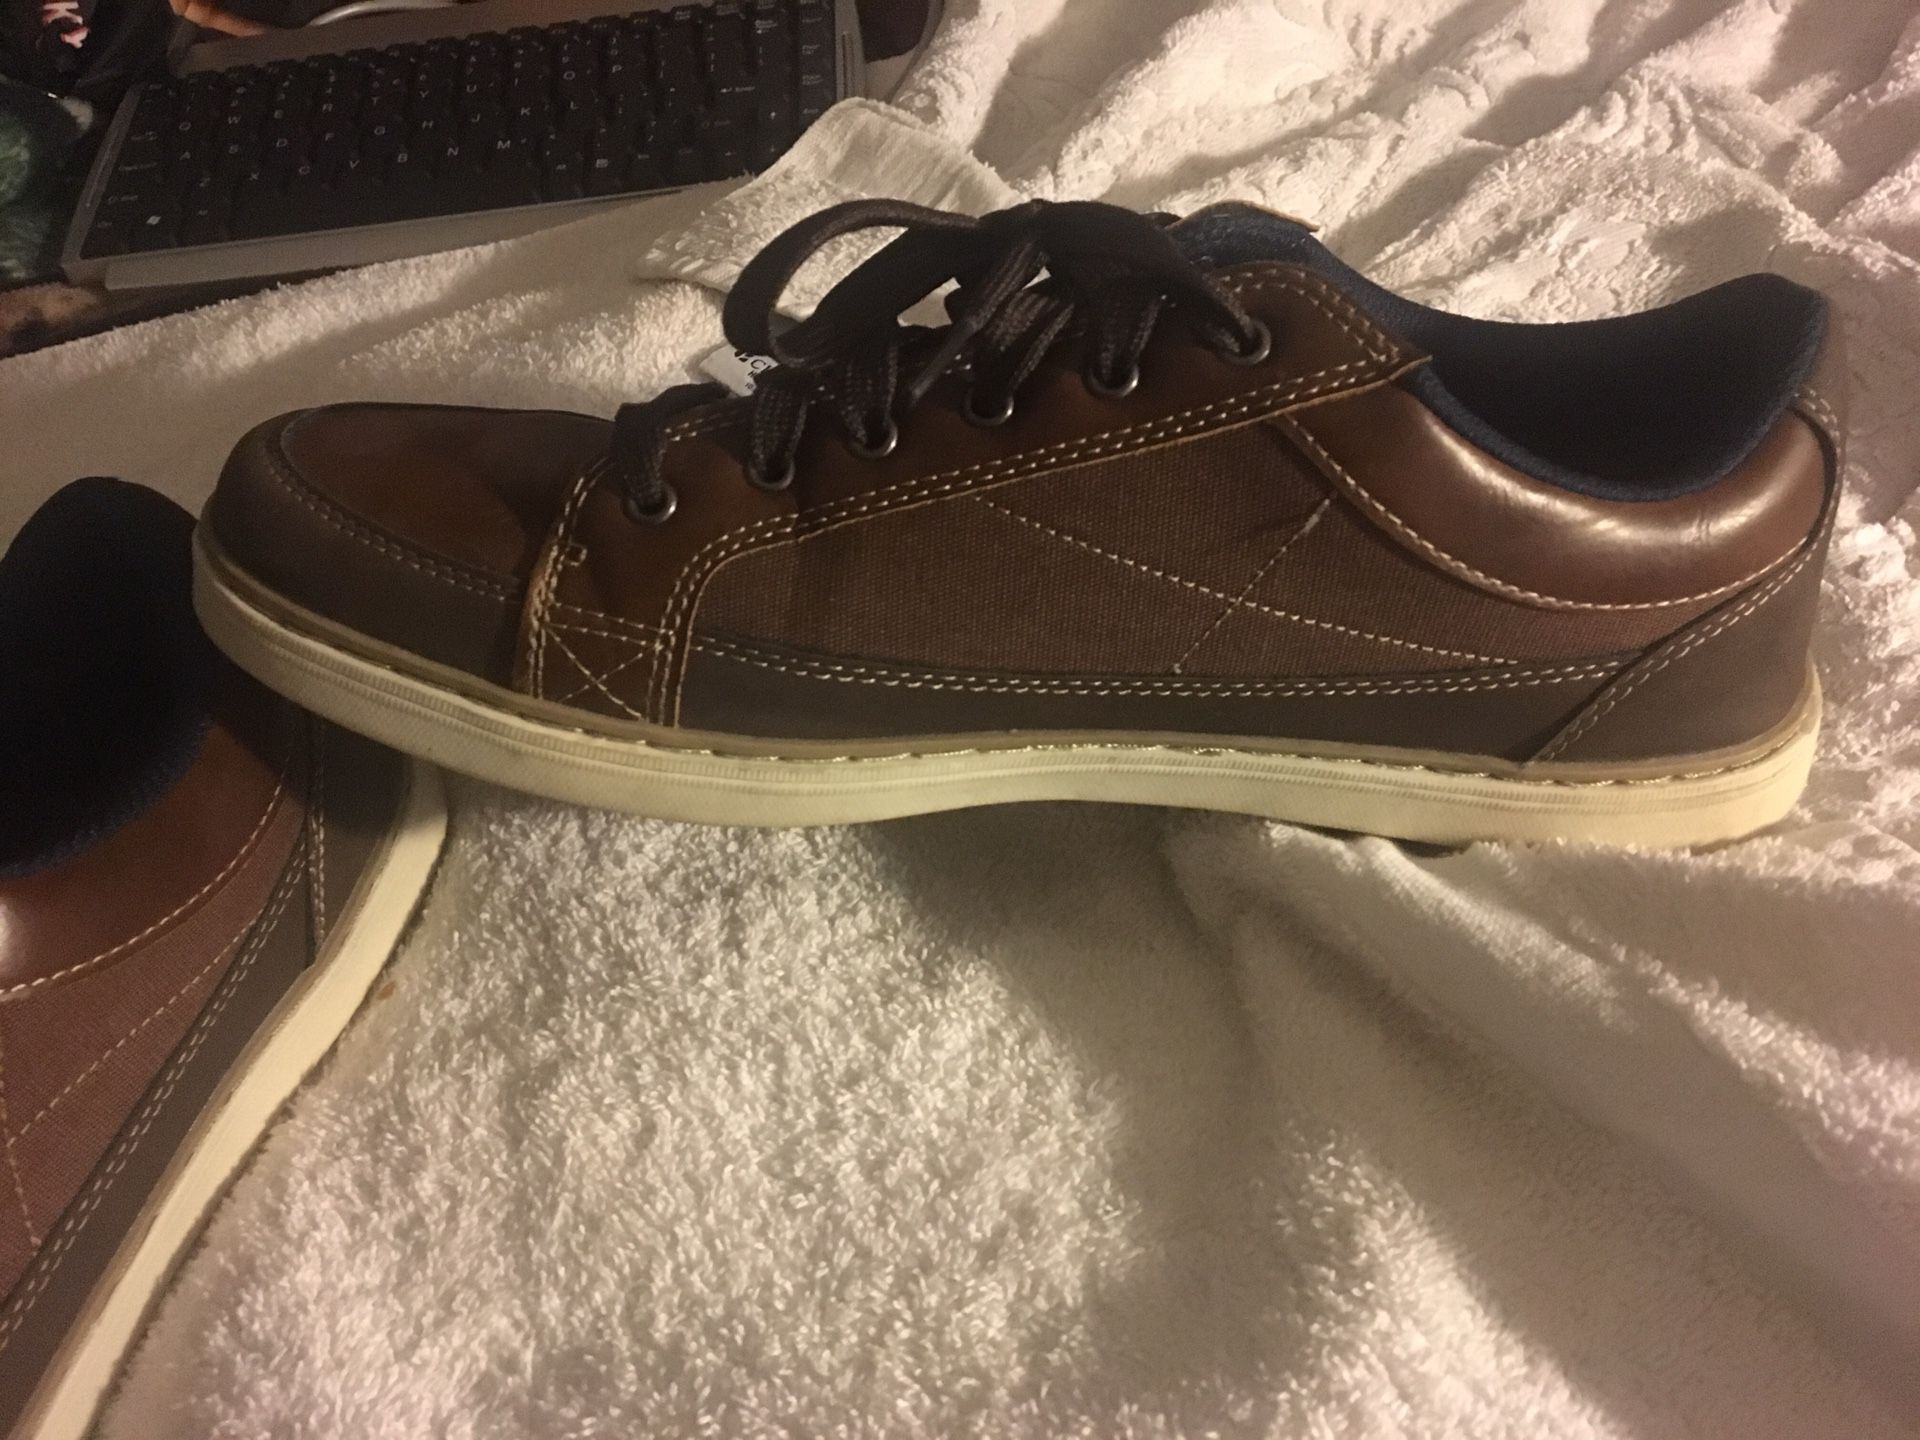 American eagle Brian Oxford shoes